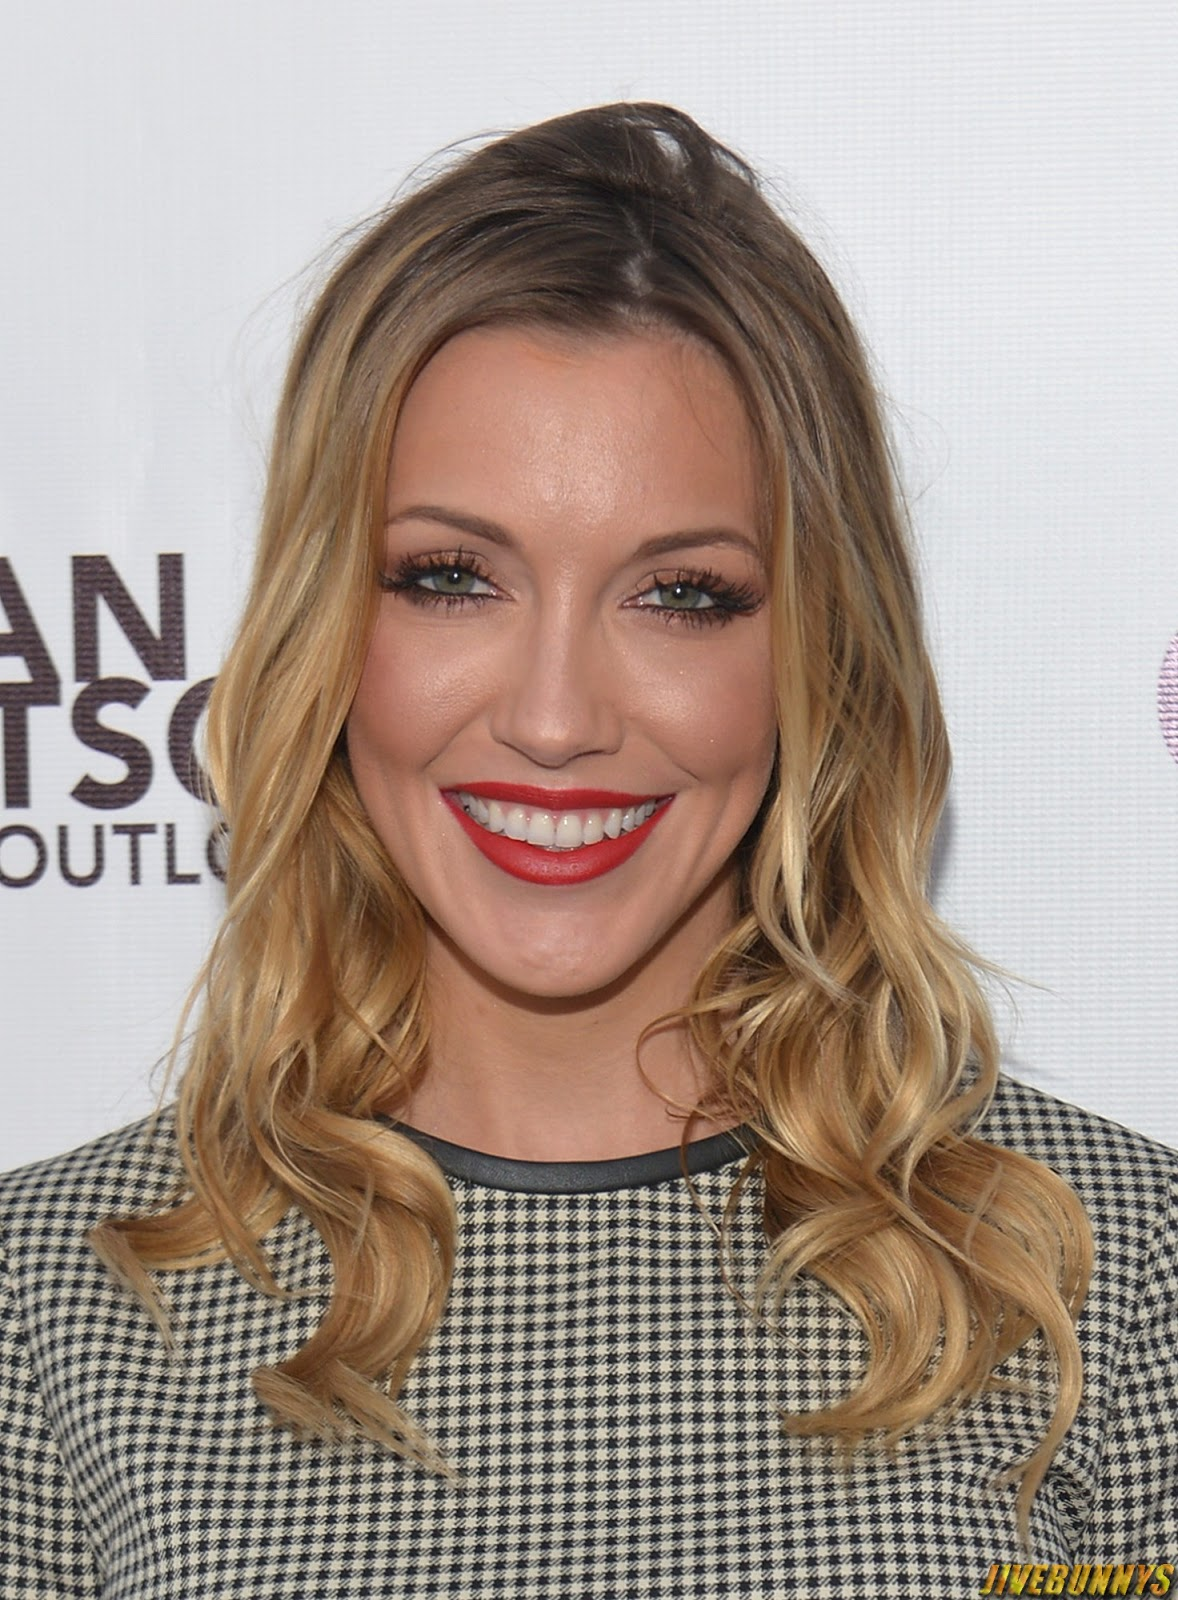 Katie Cassidy - Genlux summer issue launch party in LA 06/28/14